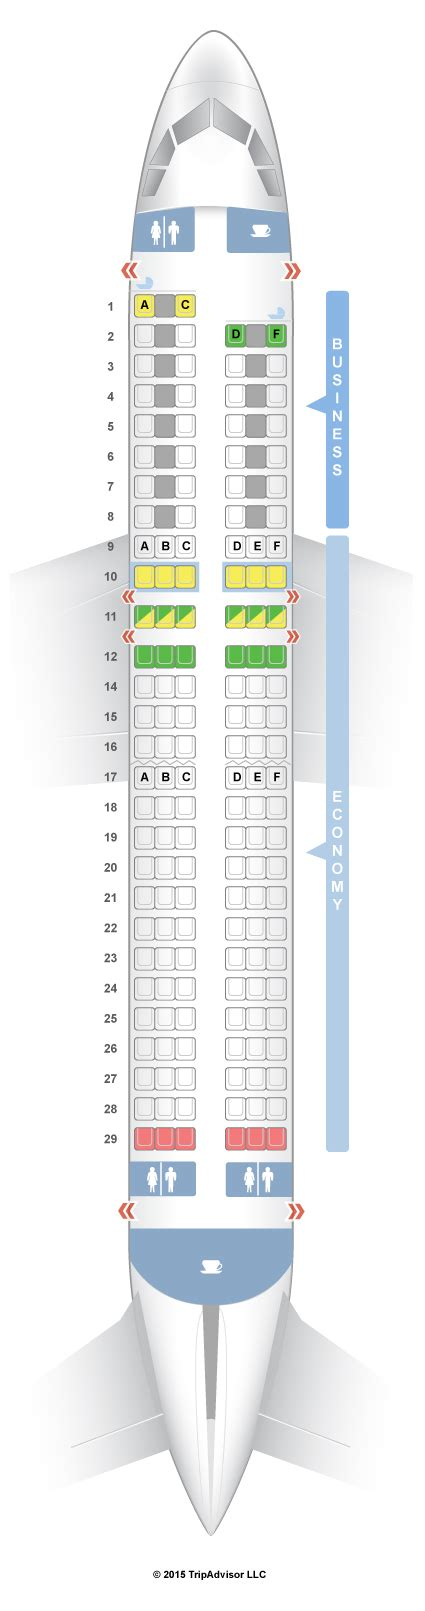 airbus a320 seating plan seatguru seat map air airbus a320 320 europe v1